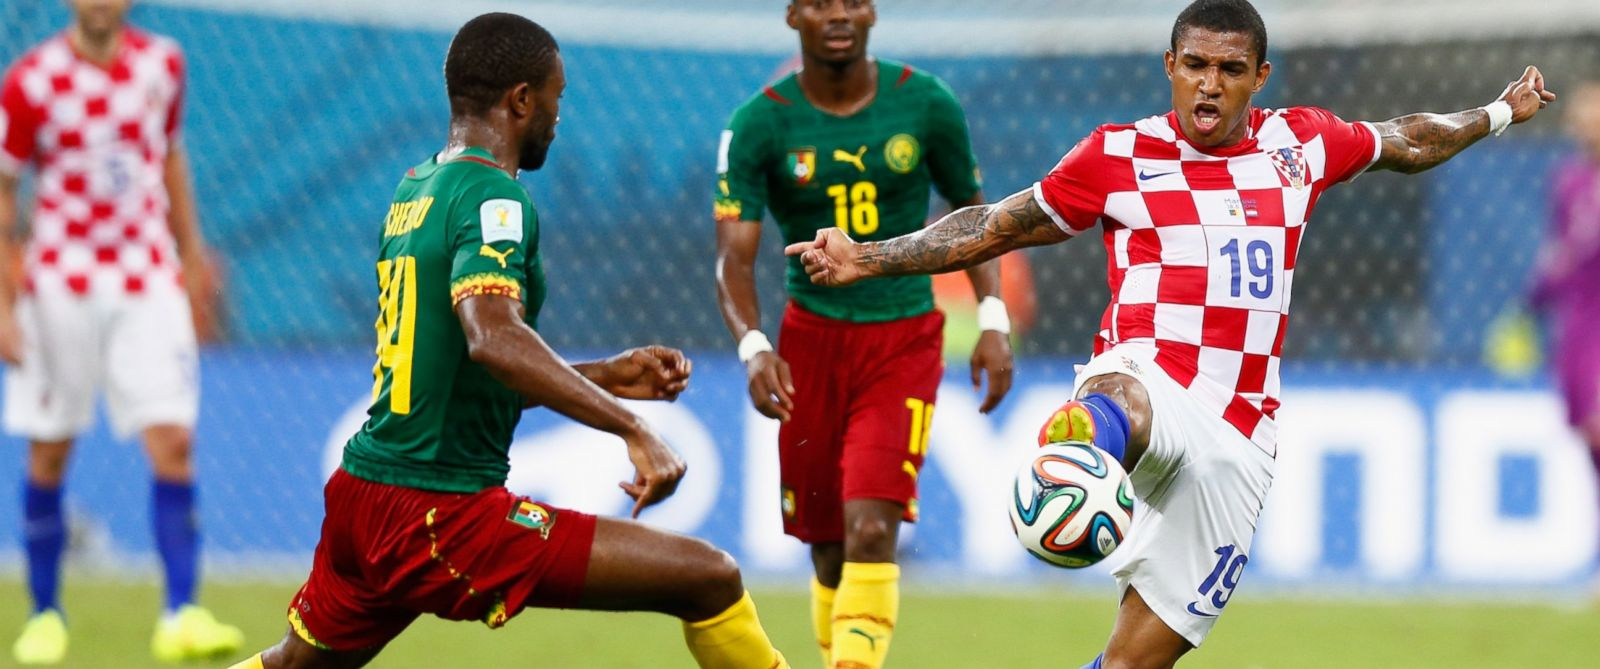 PHOTO: Sammir of Croatia controls the ball against Aurelien Chedjou of Cameroon during the 2014 FIFA World Cup Brazil Group A match between Cameroon and Croatia at Arena Amazonia on June 18, 2014 in Manaus, Brazil.